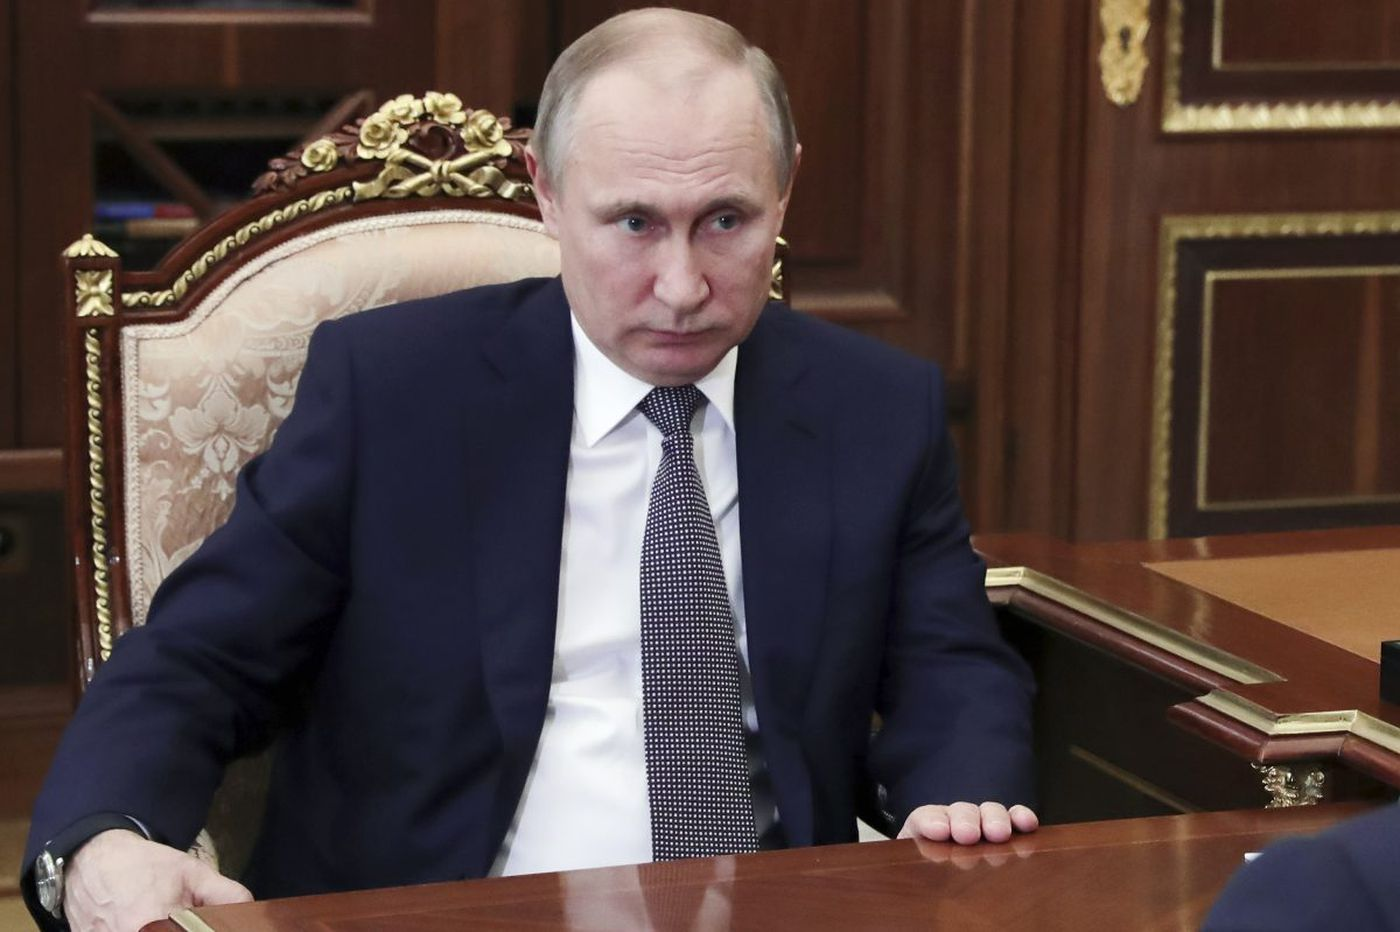 Report from Moscow: Russian TV news exacerbates disconnect between Putin and the U.S. | Trudy Rubin